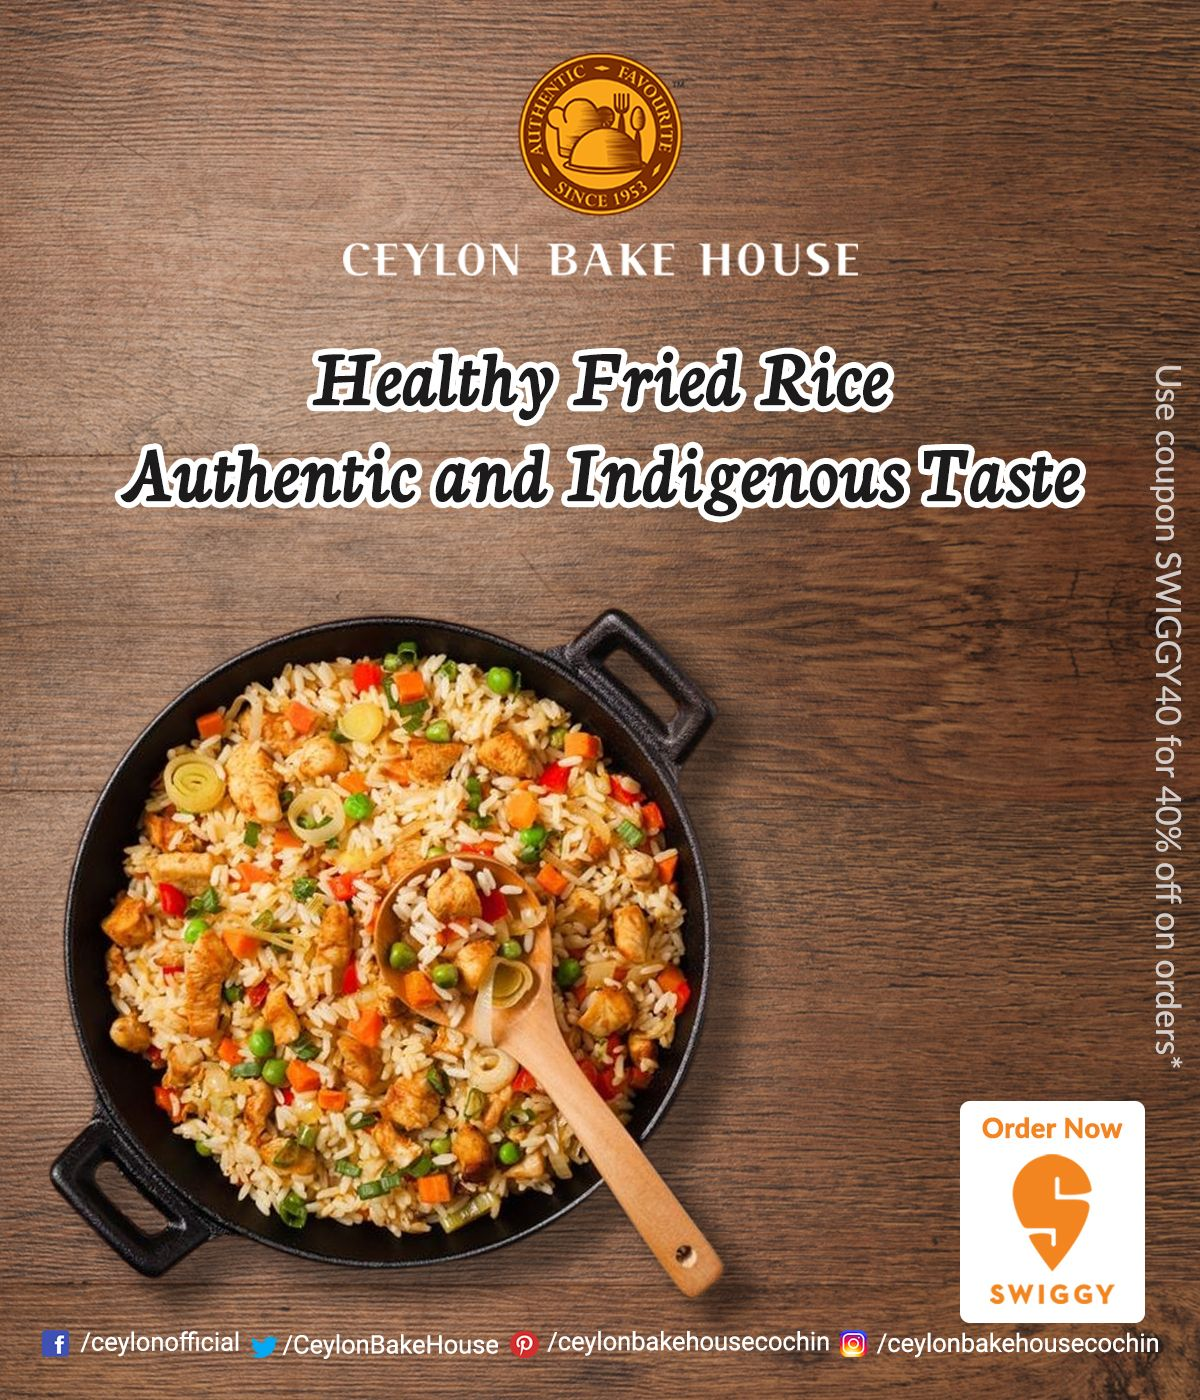 Delicious and healthy twist on a typical fried rice recipe Experience a delicious and healthy twist on a typical fried rice recipe.